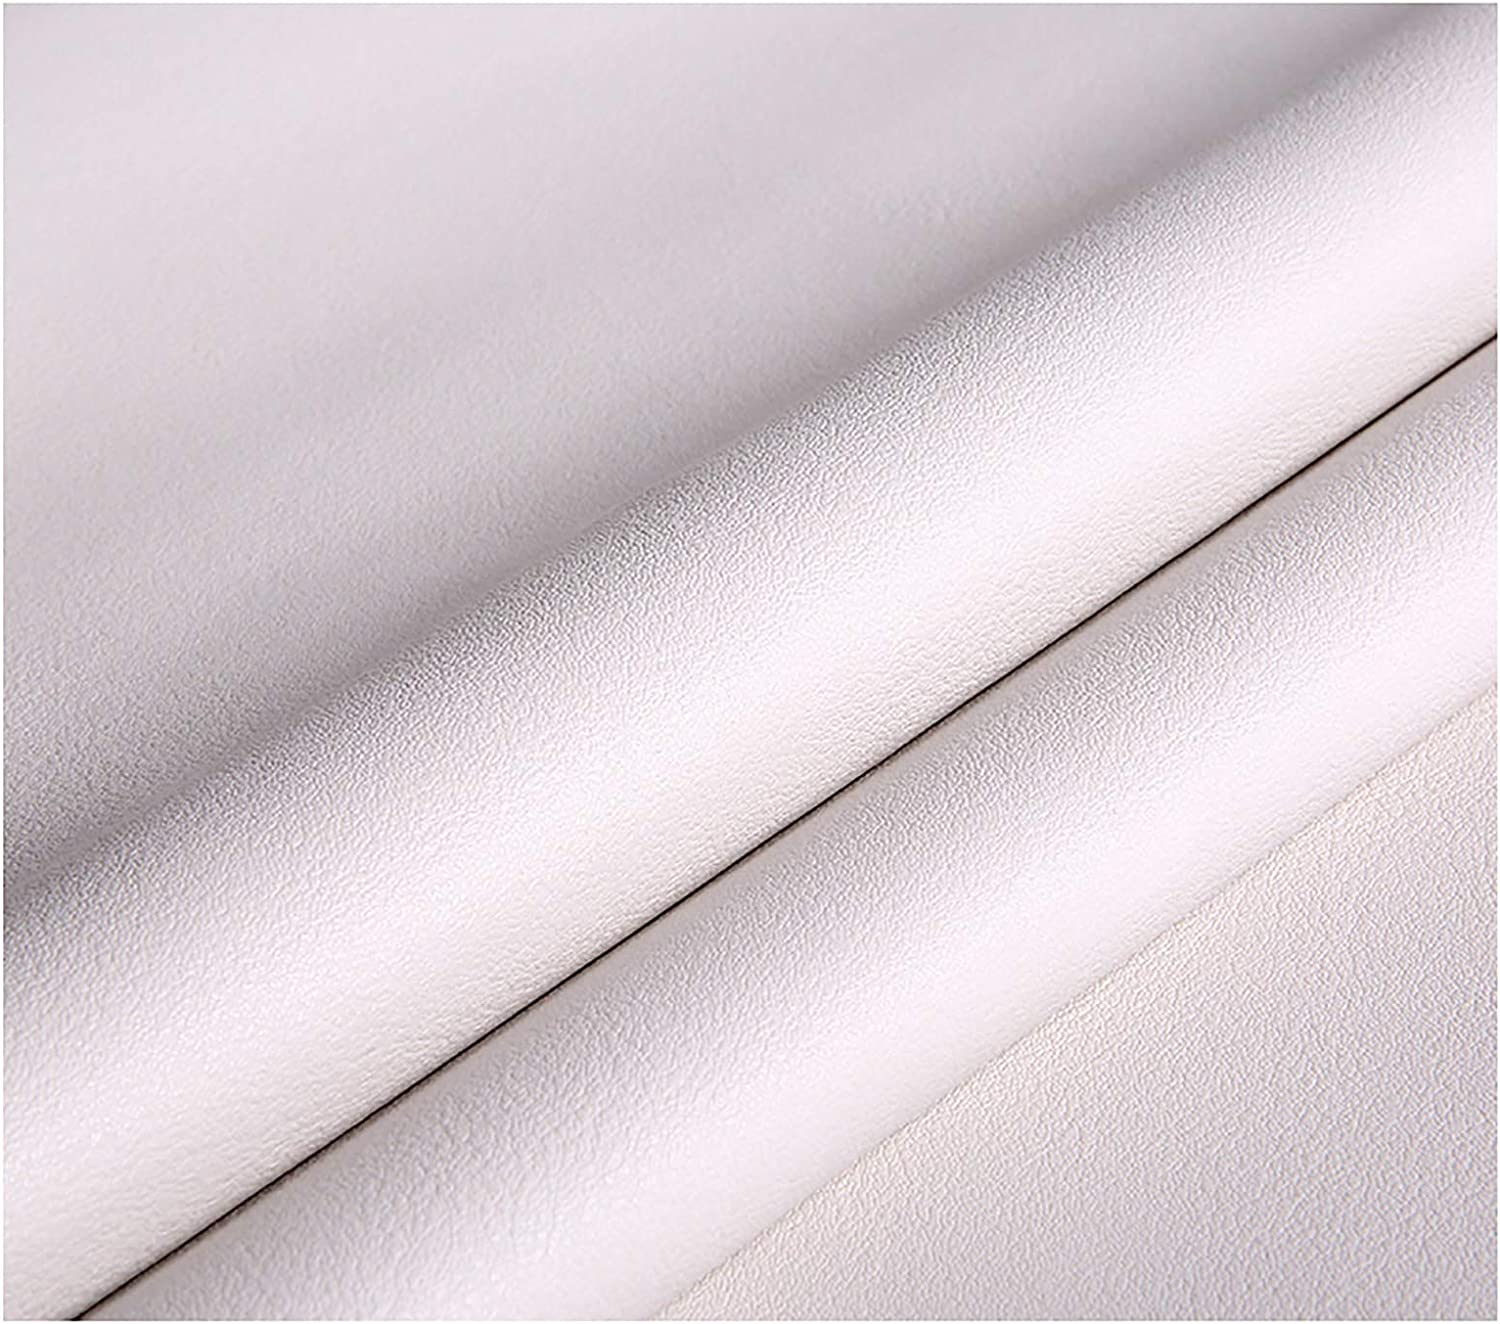 Solid Color 1 2mm Thick Faux Le Leatherette Max 65% OFF Vinyl Seattle Mall Leather Fabric